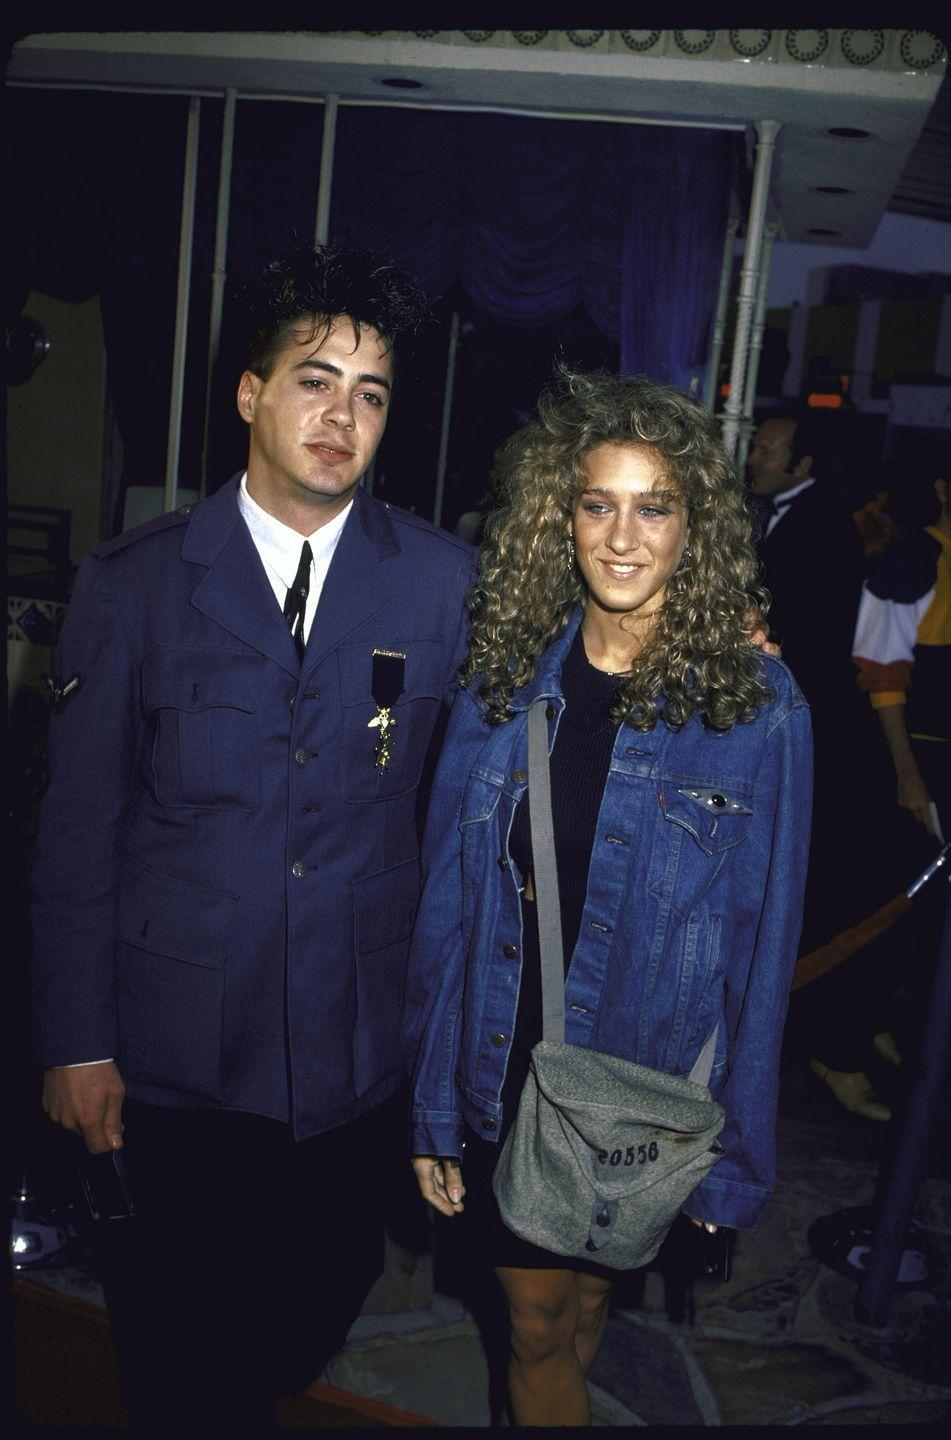 <p>The rising star, who was on the cusp of starring on <em>Saturday Night Live </em>at this point, attended the premiere of the CBS Television Movie <em>Going for the Gold: The Bill Johnson Story </em>with his then-girlfriend Sarah Jessica Parker. </p>